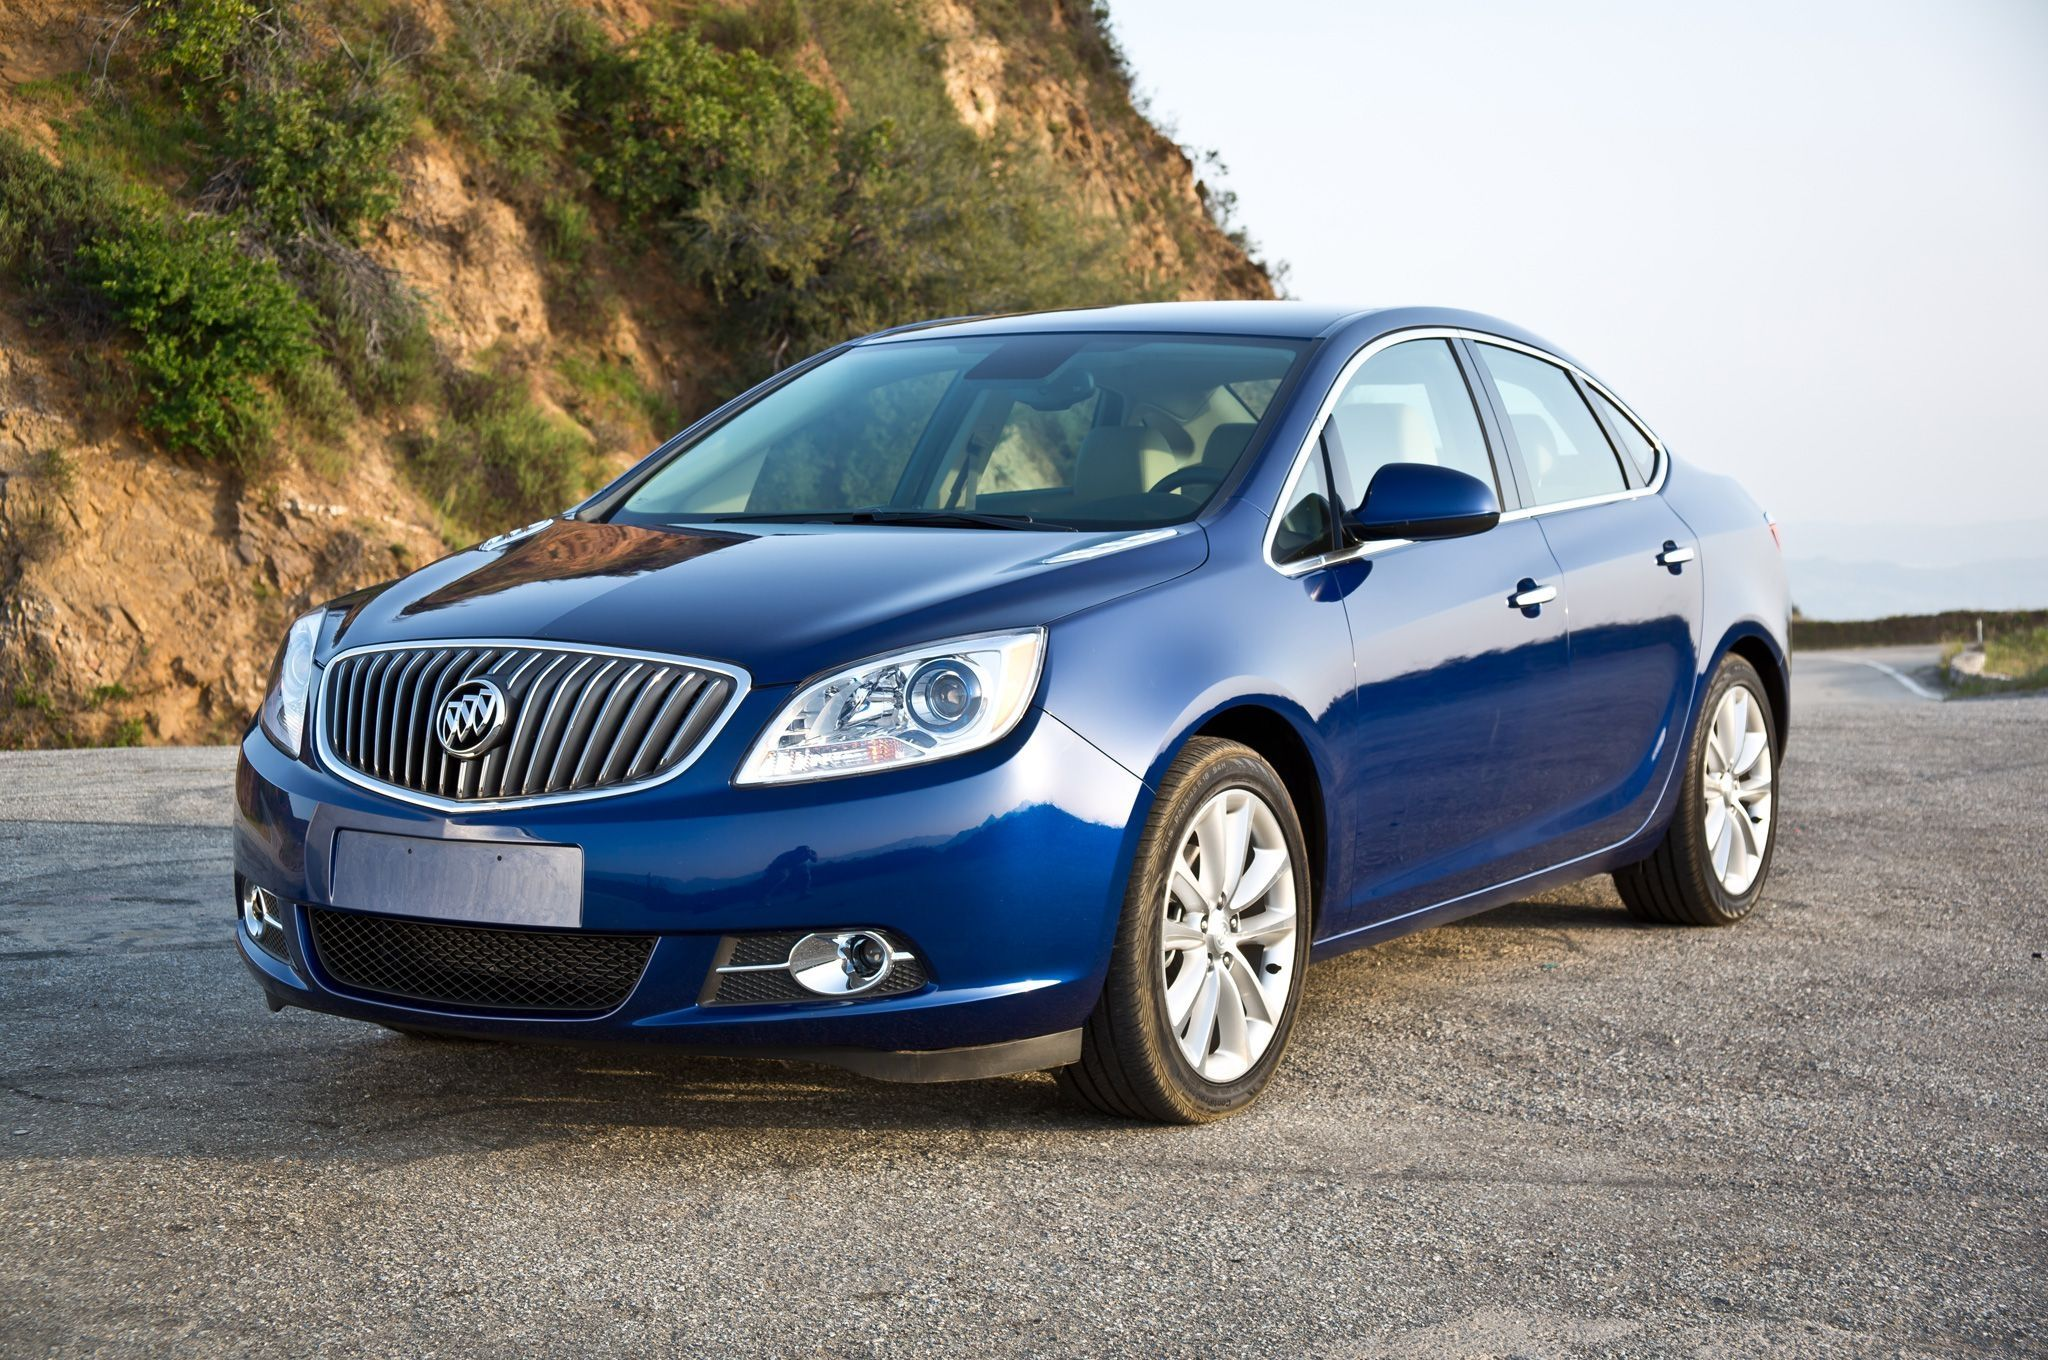 reliability cars brand puts money lauding shocks survey u buick this vehicles auto by consumer reports s story top